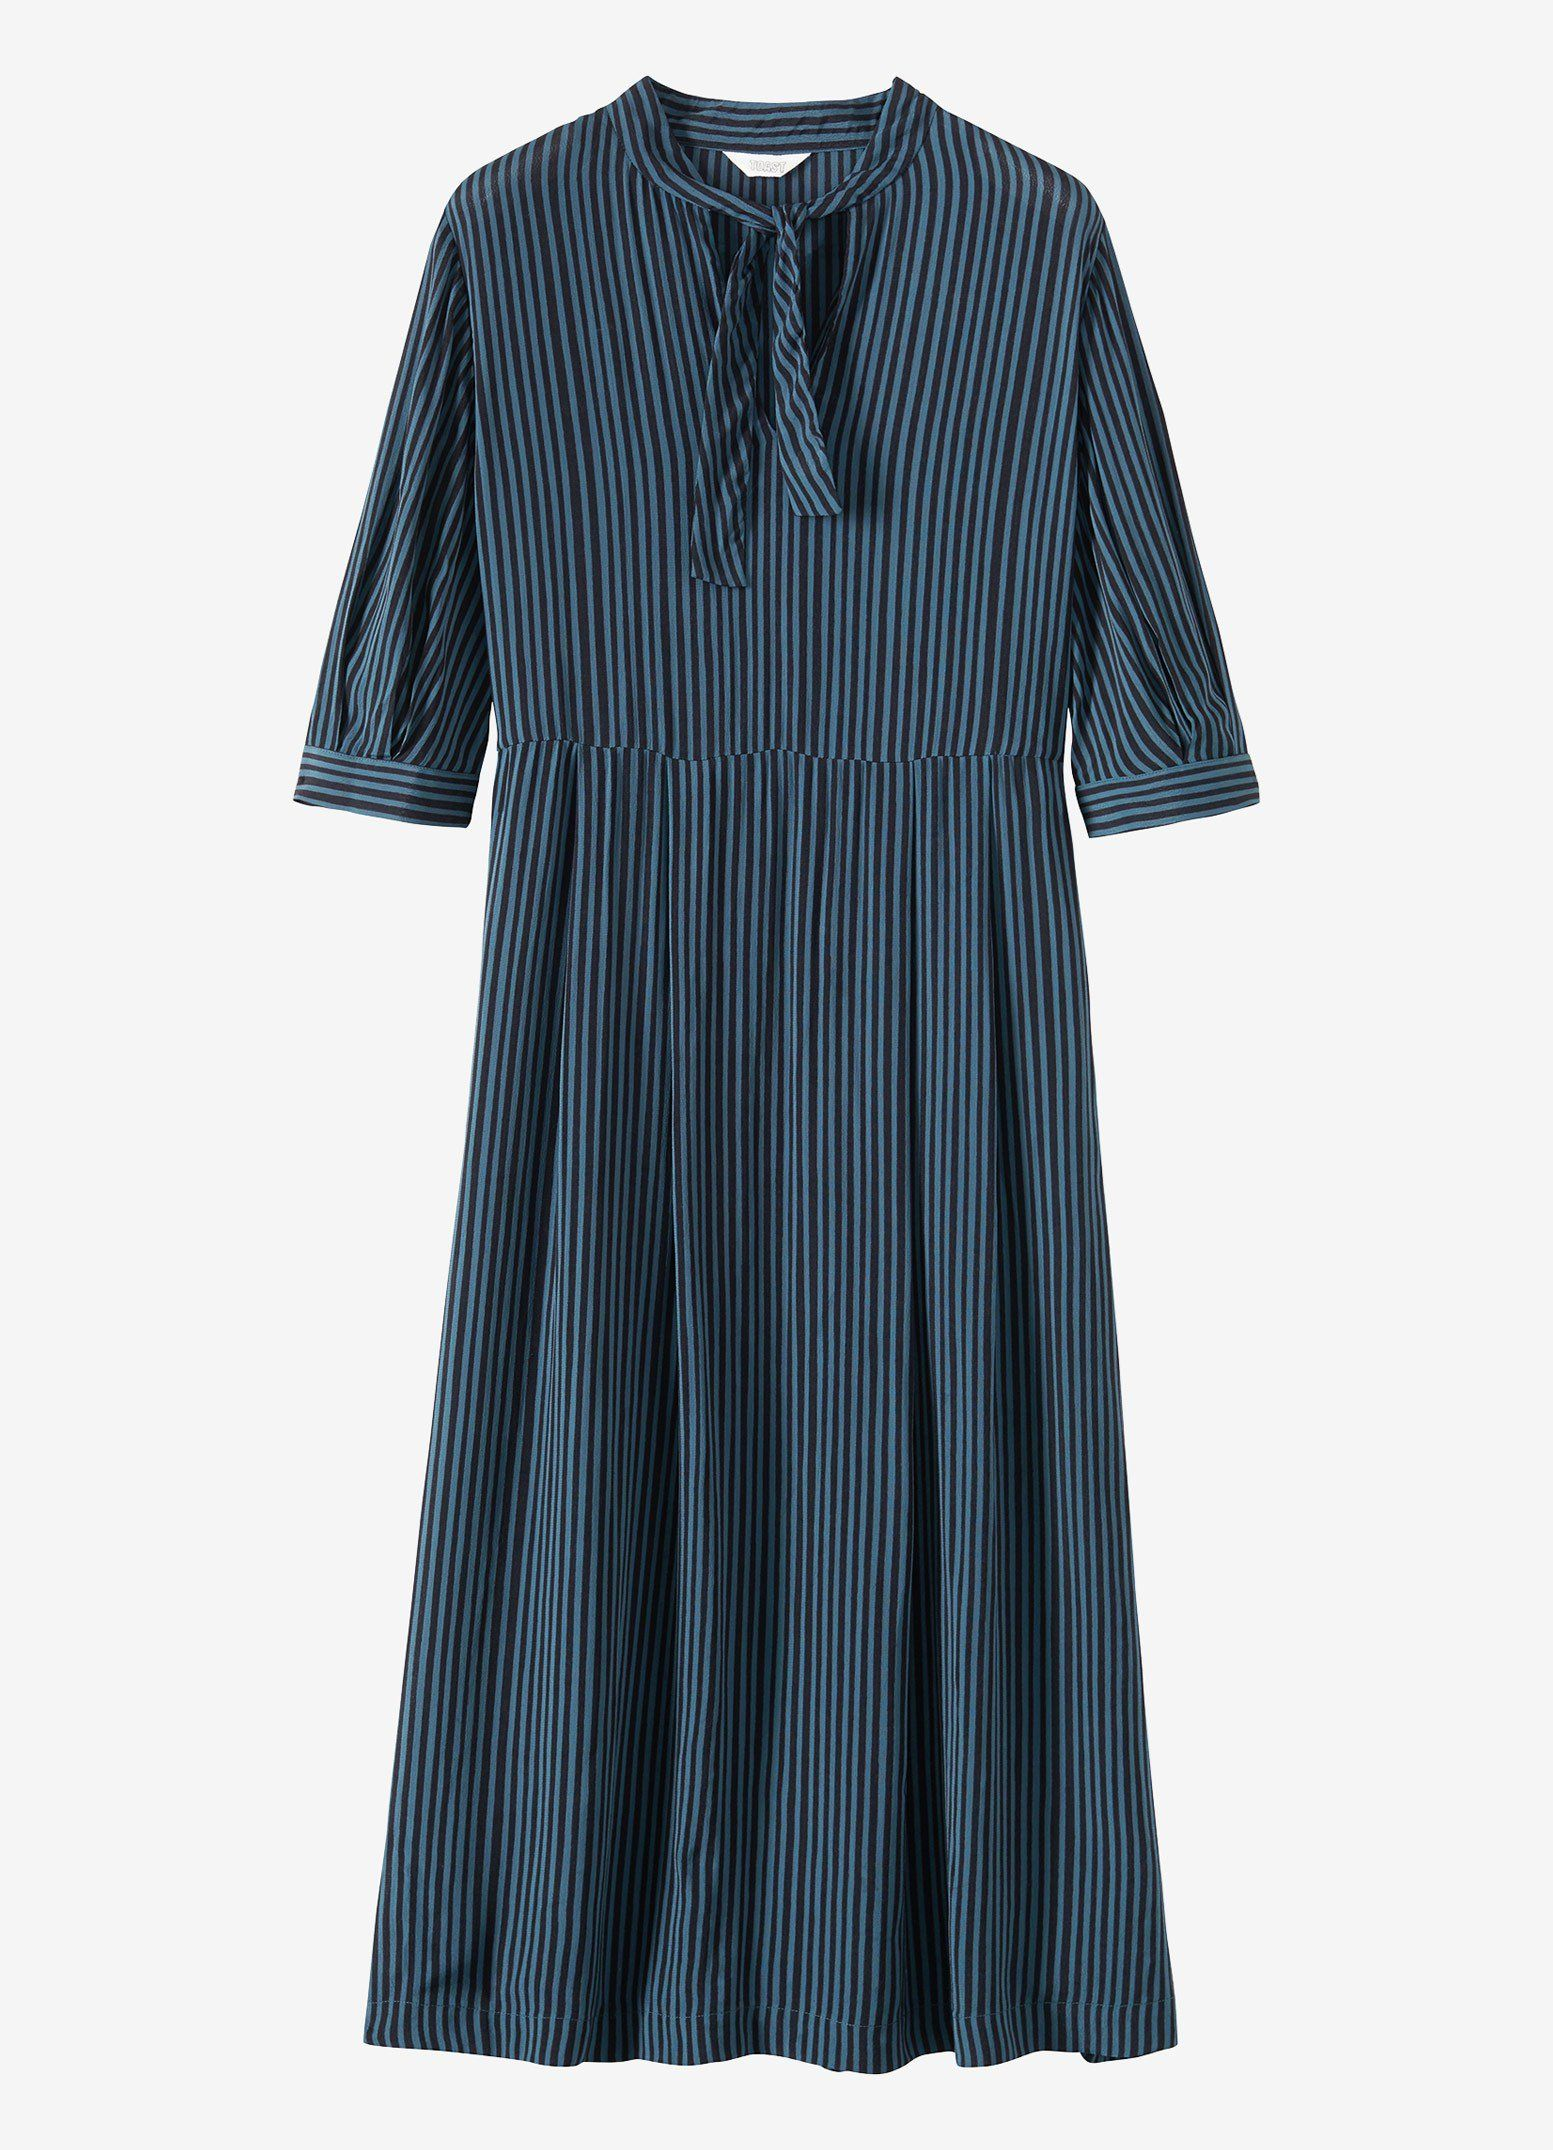 9b6aafcaac9f Vertical Stripe Print Dress